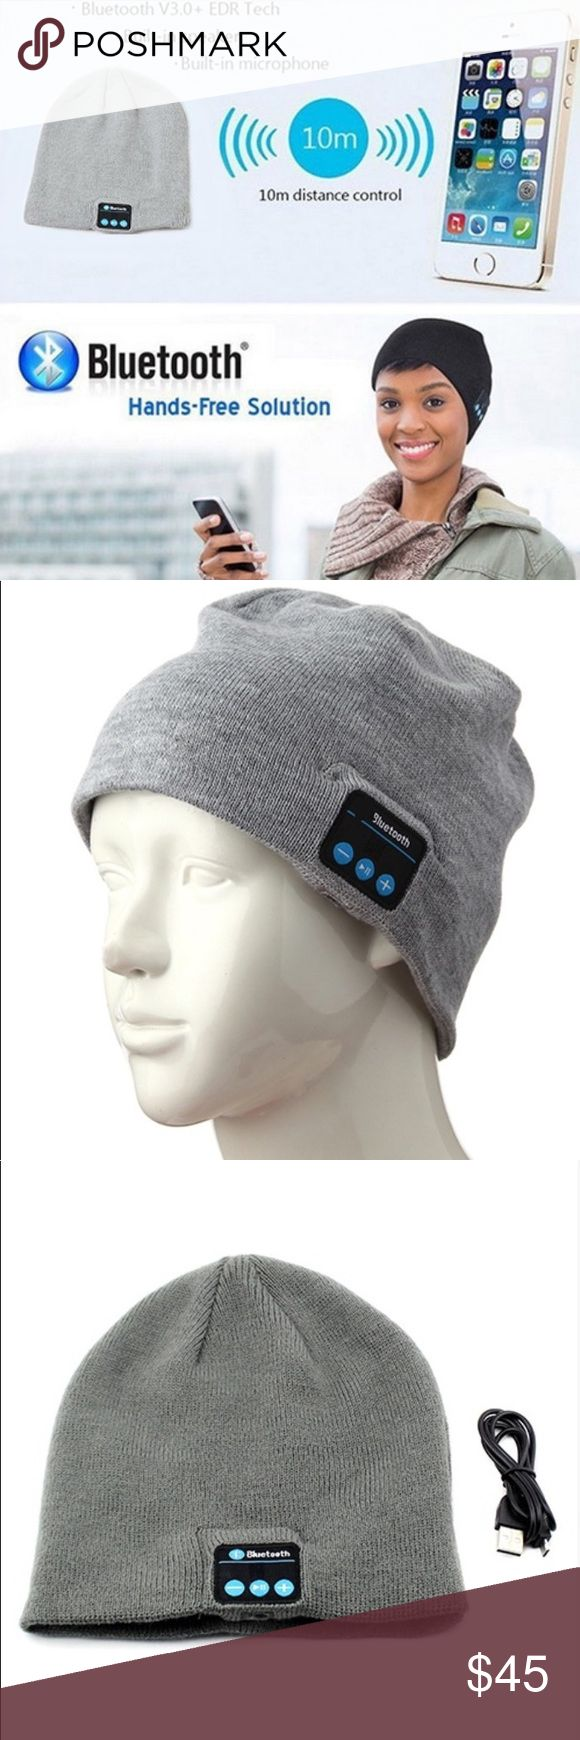 Wireless, Bluetooth beanie hat Wireless Bluetooth smart beanie  Retail price $480 Feature hand free answering phone up via the device Set-in Li-ion chargeable battery, charge via USB Cable, long stand-by time. Specifications  Bluetooth Version: V3.0+EDR Frequency: 2.4026GHz-2.480GHz Transmission distance: 30ft or so Transmission distance of MIC:3 ft Standby time: 60 Hrs Continuous working time:5Hrs Bluetooth name: BT-03S Fits for head circumference 56-62cm Speakers can be taken off to wash…